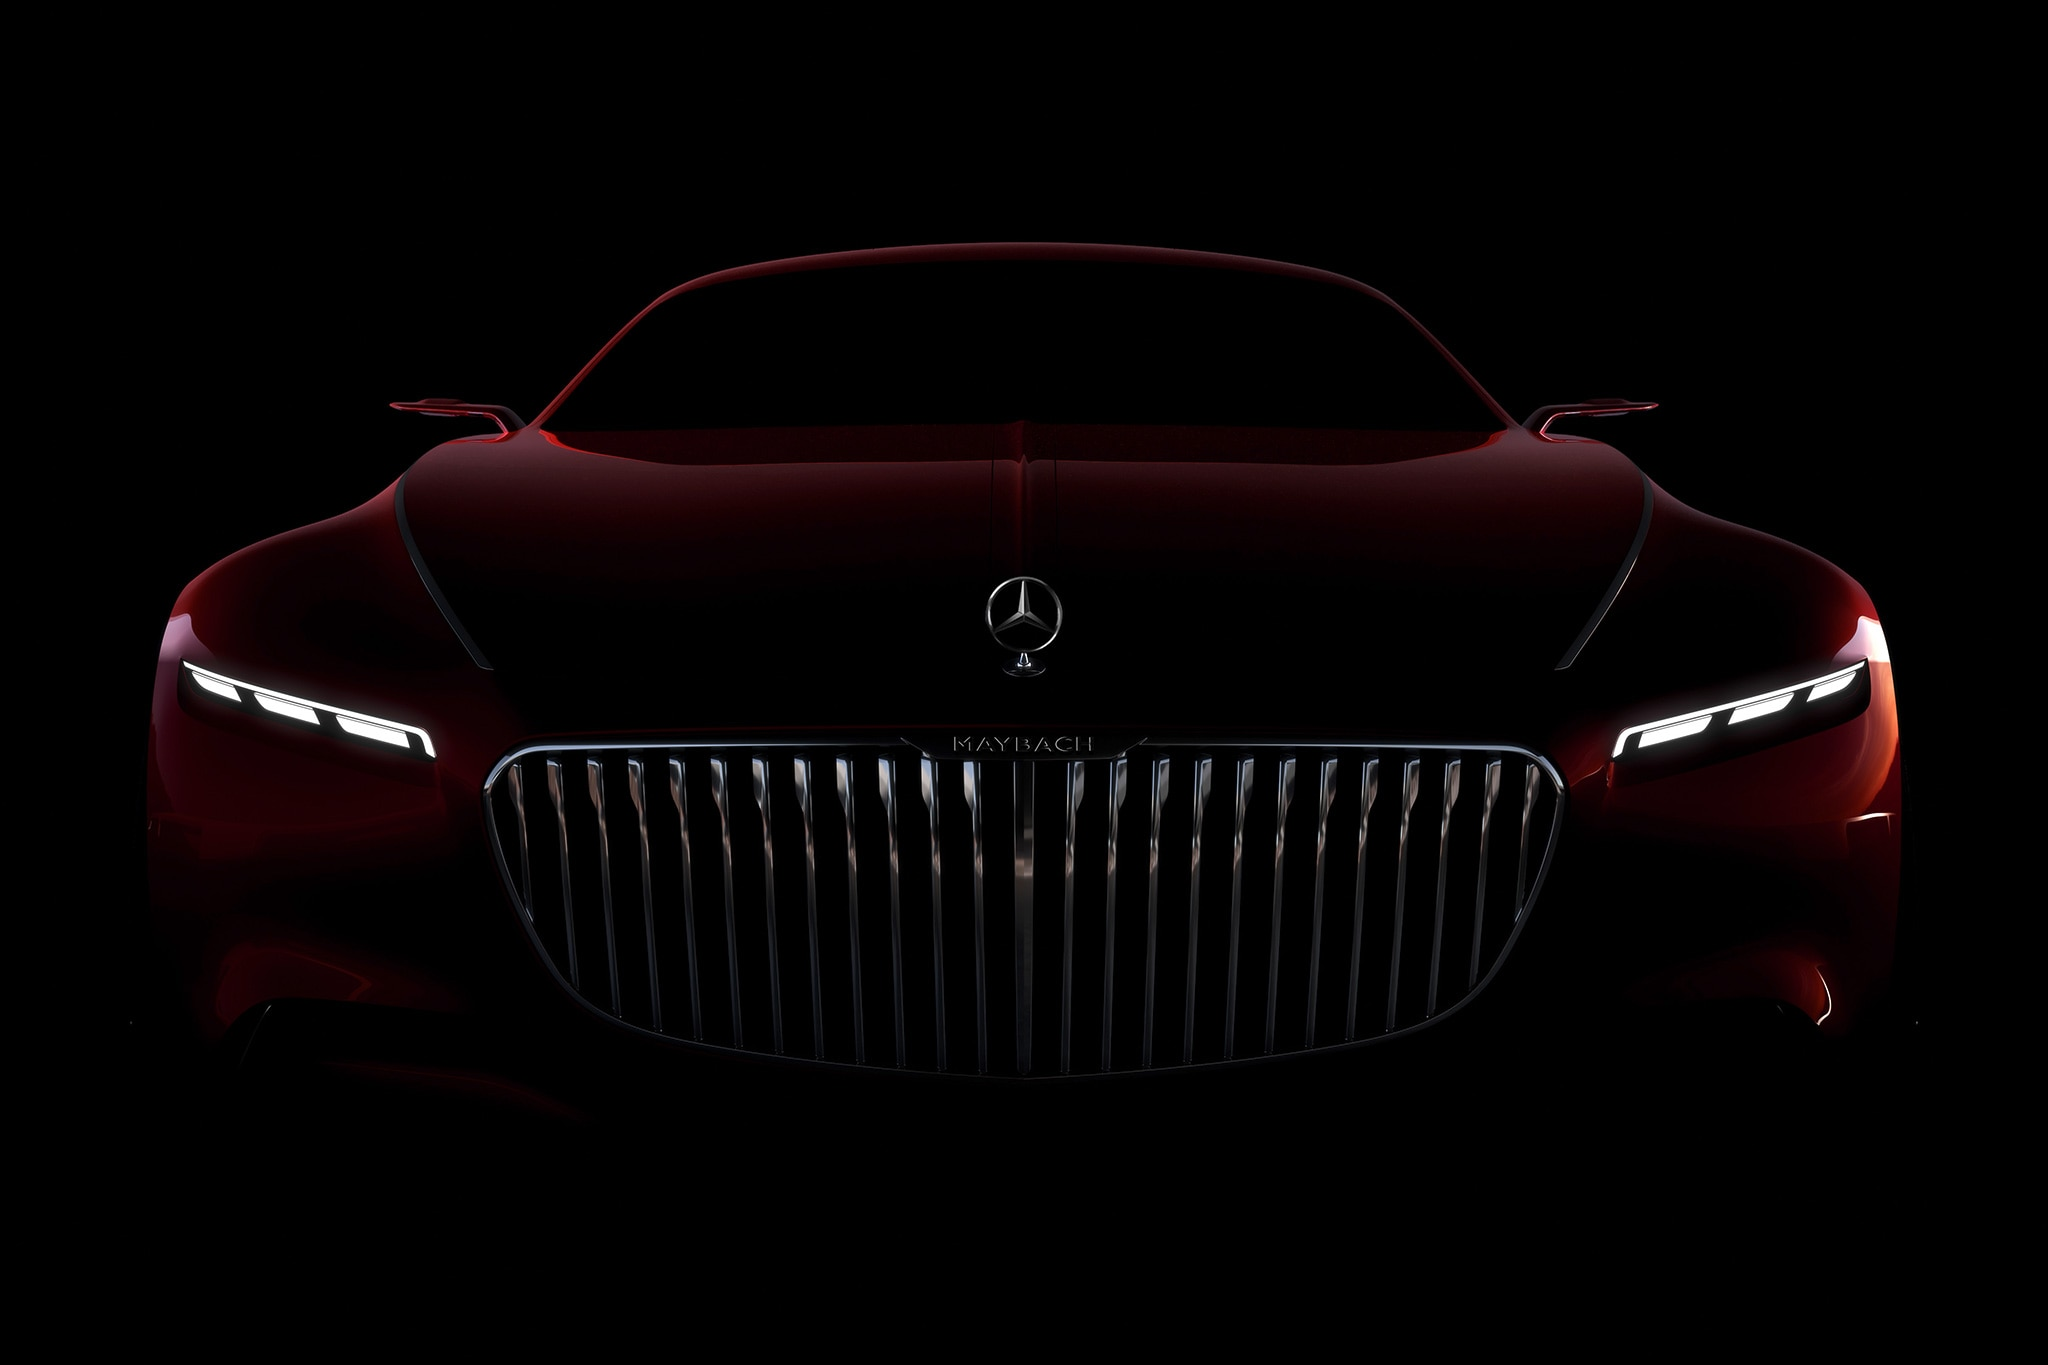 Mercedes Maybach Concept Is Really Really Long Vision Mercedes-Maybach 6 Concept Stuns at Pebble Beach   Automobile ...